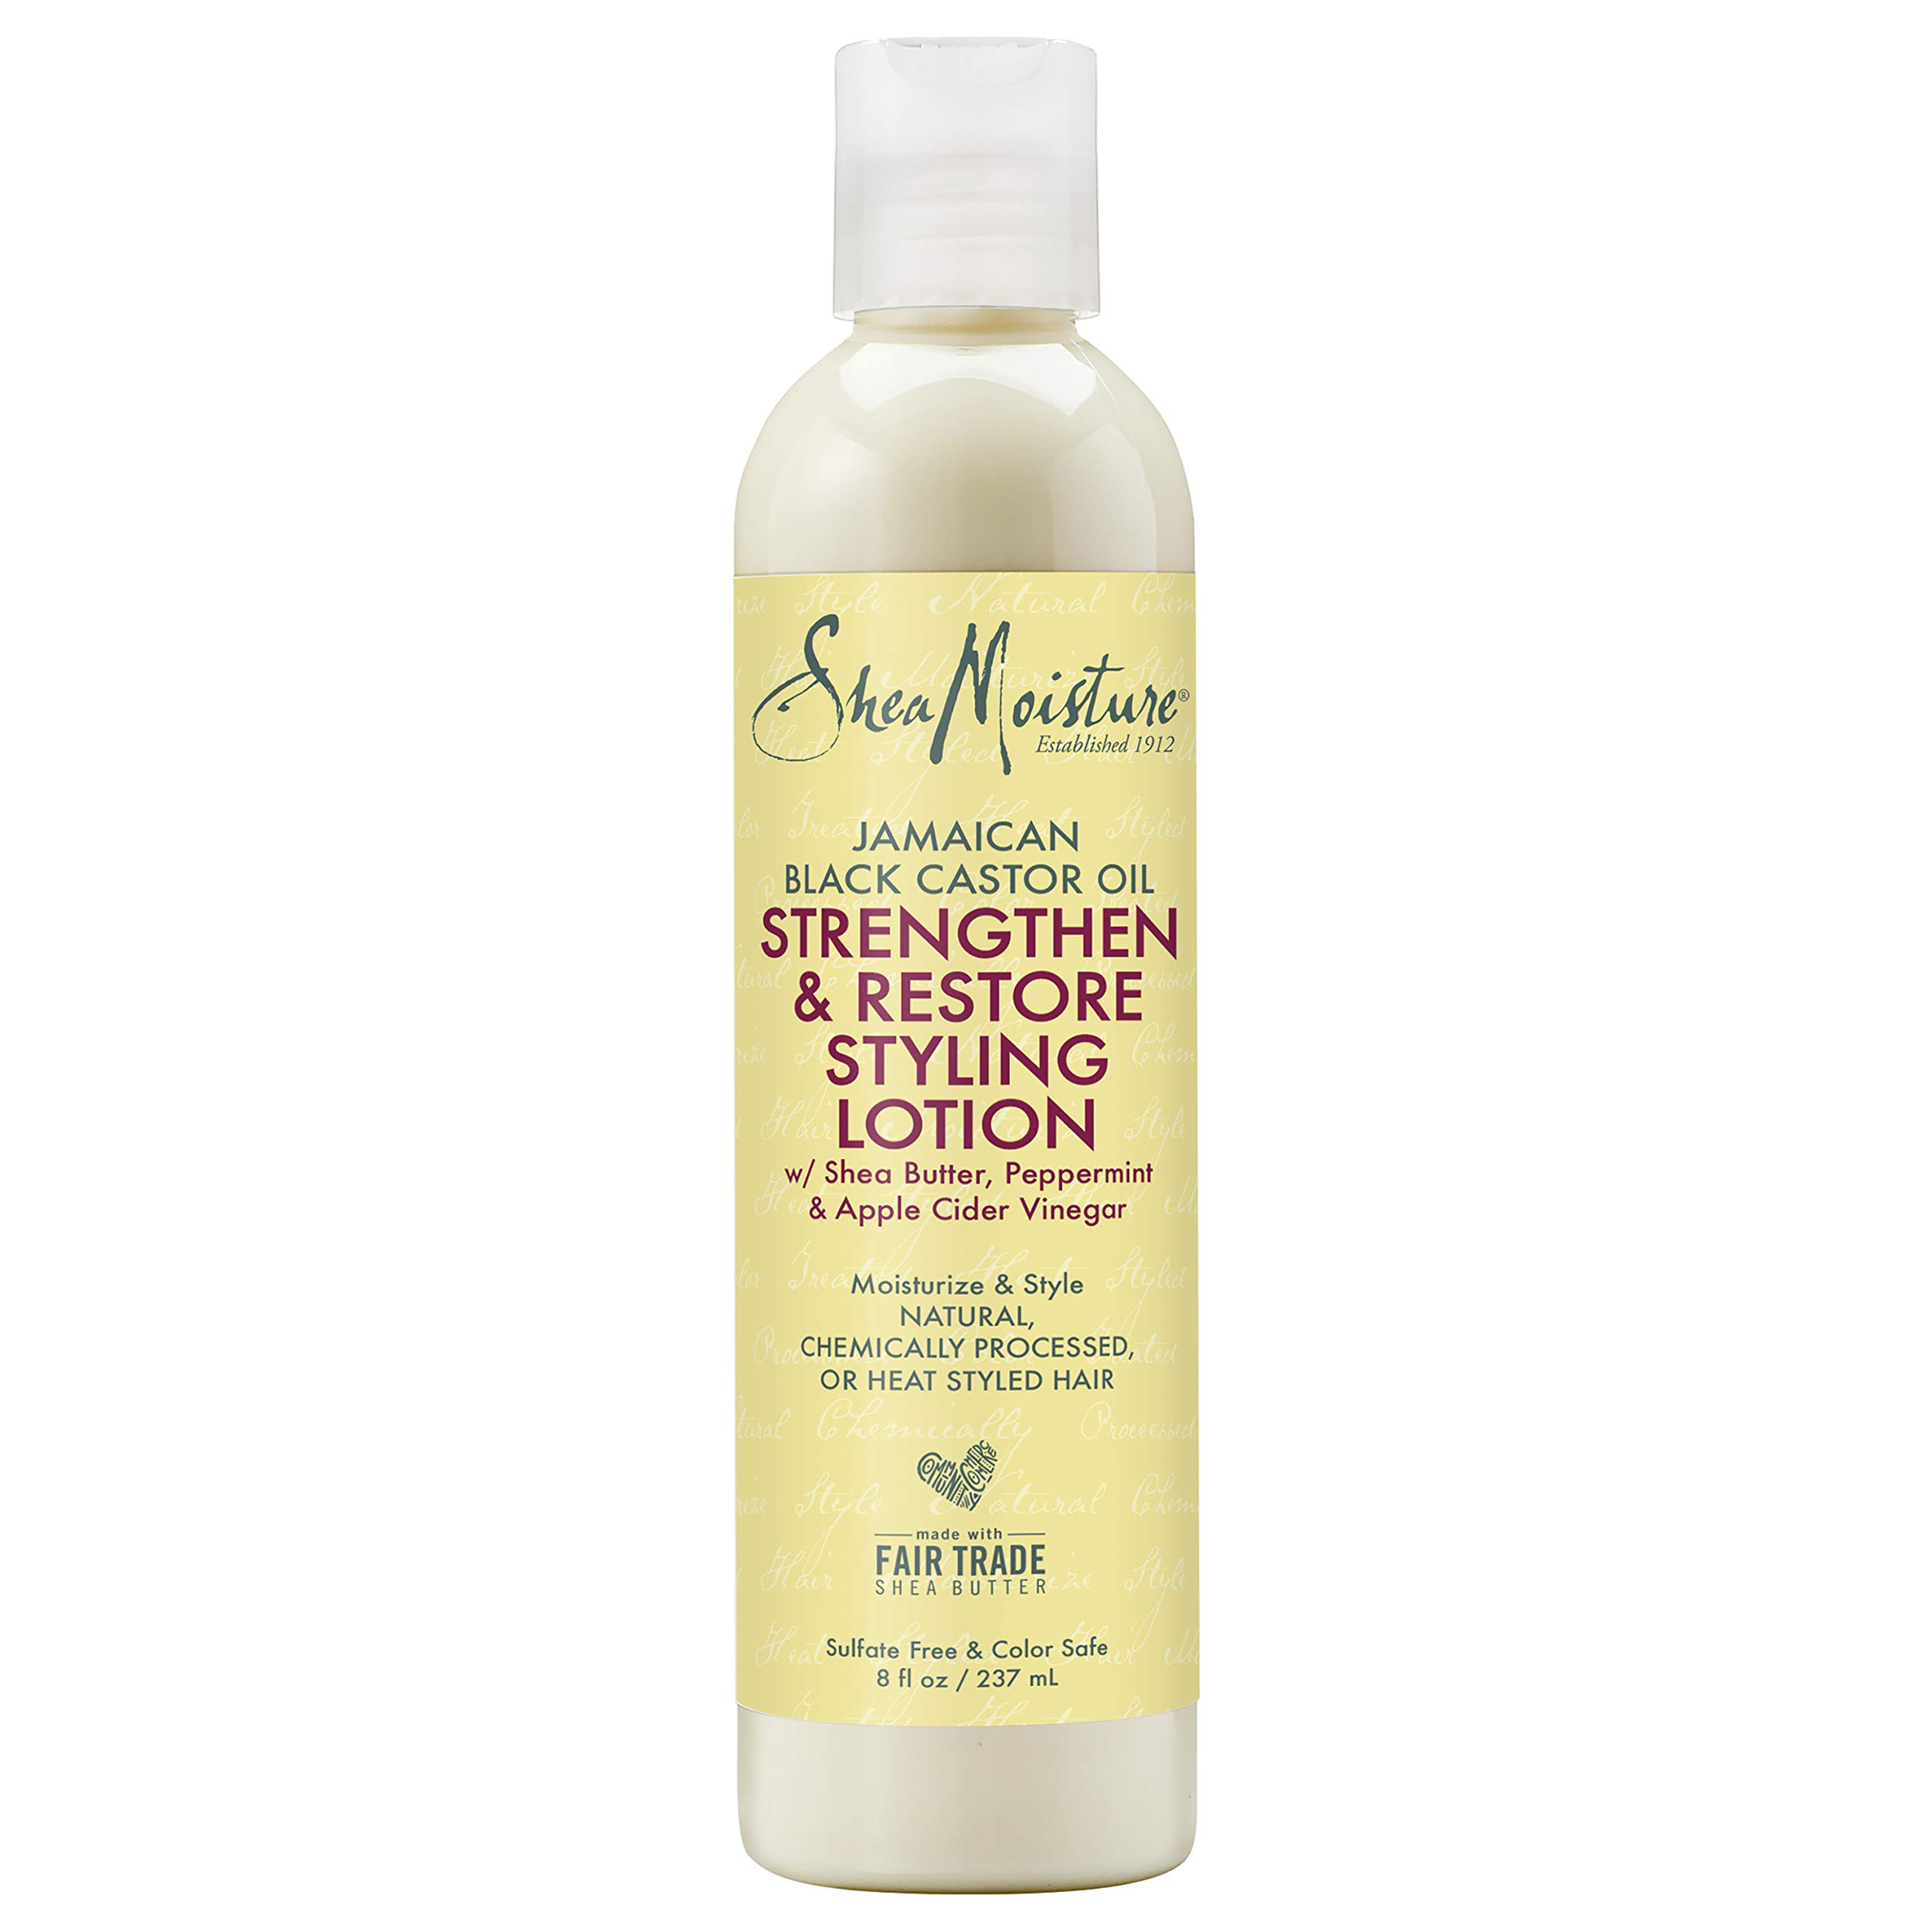 Sheamoisture Styling Lotion for Damaged Natural Hair Jamaican Black Castor Oil Silicone Free Hair Treatment 8 oz